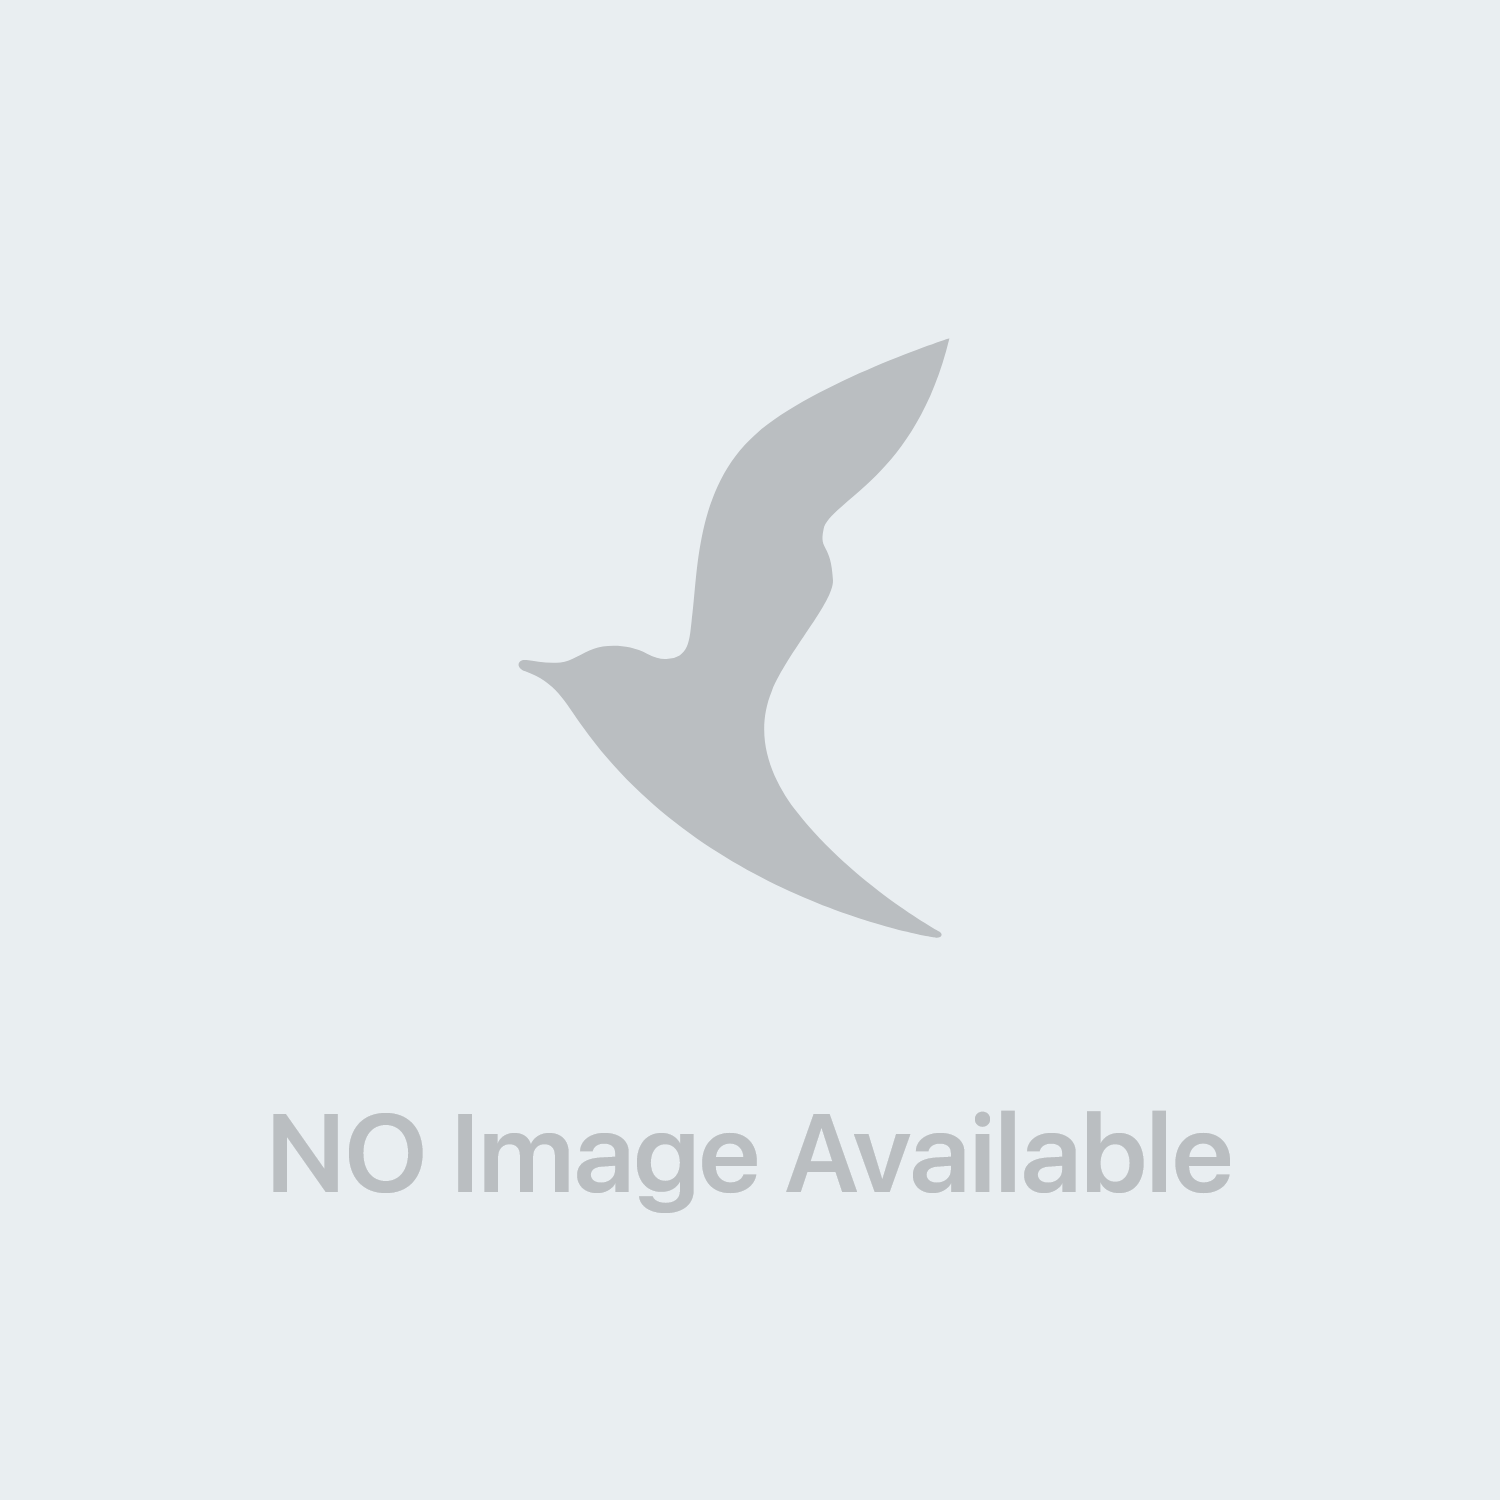 Neutrogena T Gel Forte Shampoo Antiforfora 125 Ml